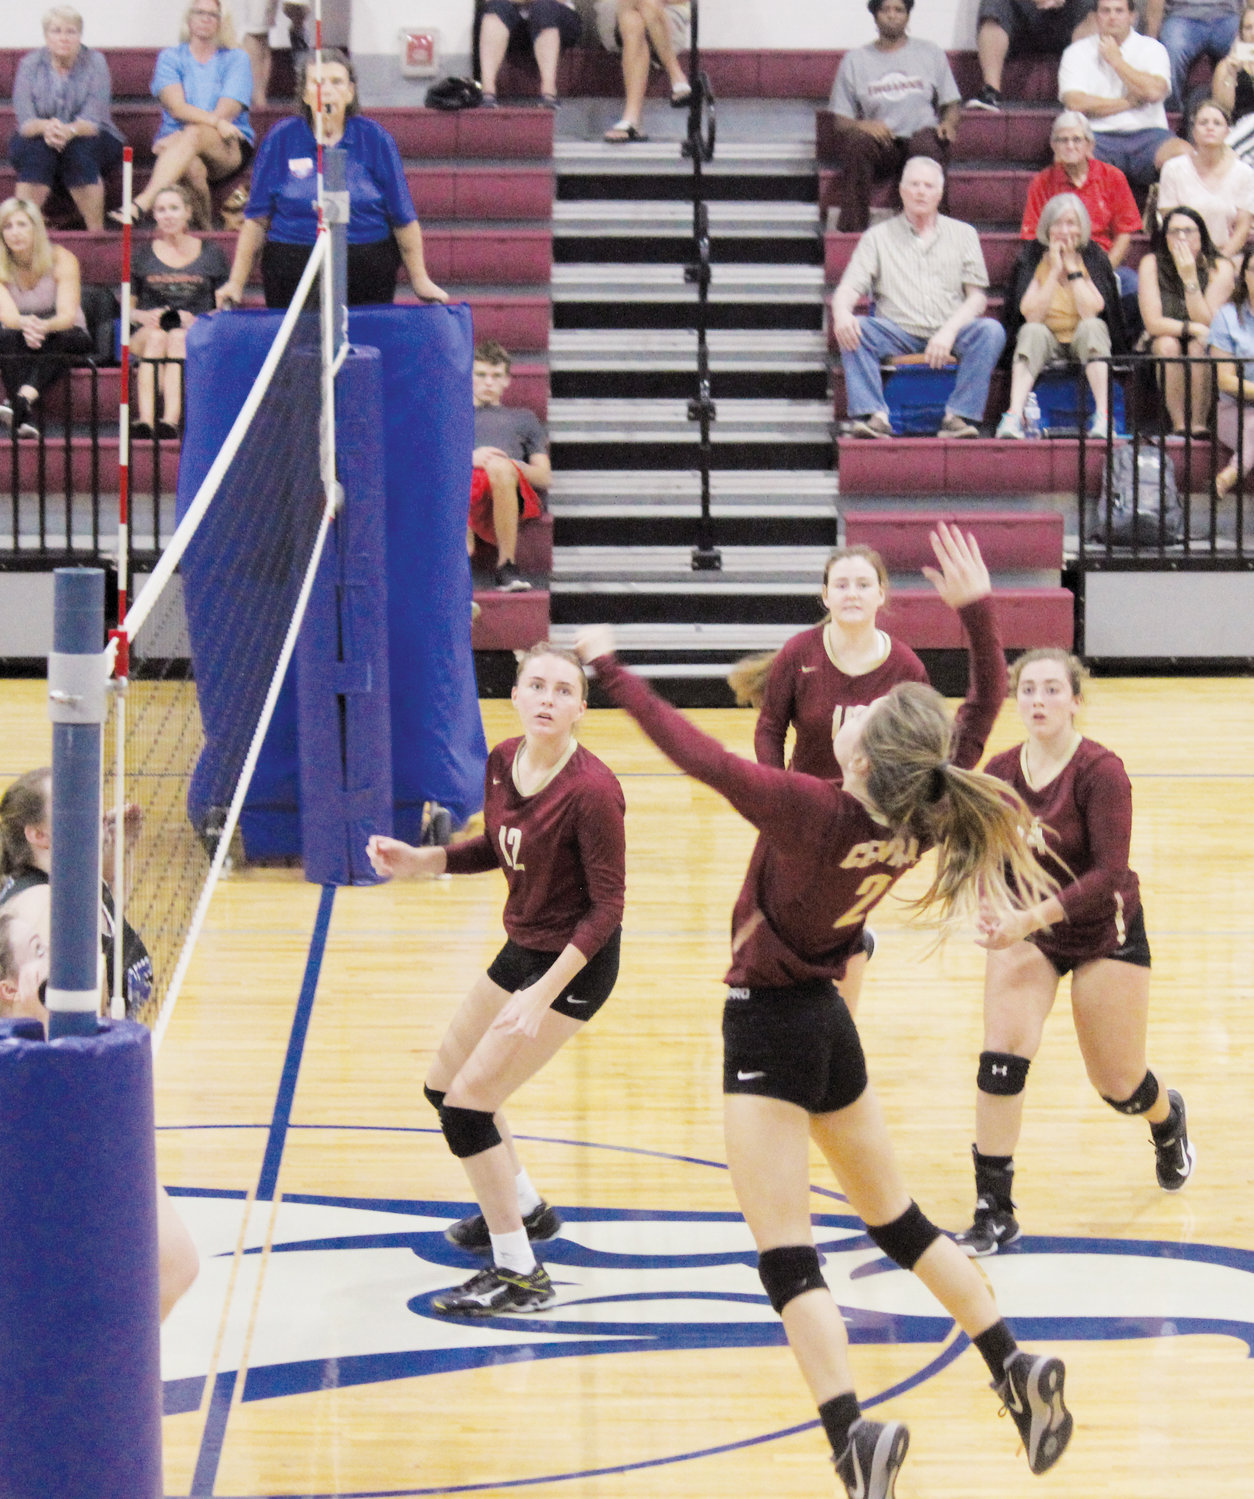 Kylee Frailey rises up for one of her 14 kills in Tuesday's 3-1 win over Triton at Coats-Erwin Middle School.